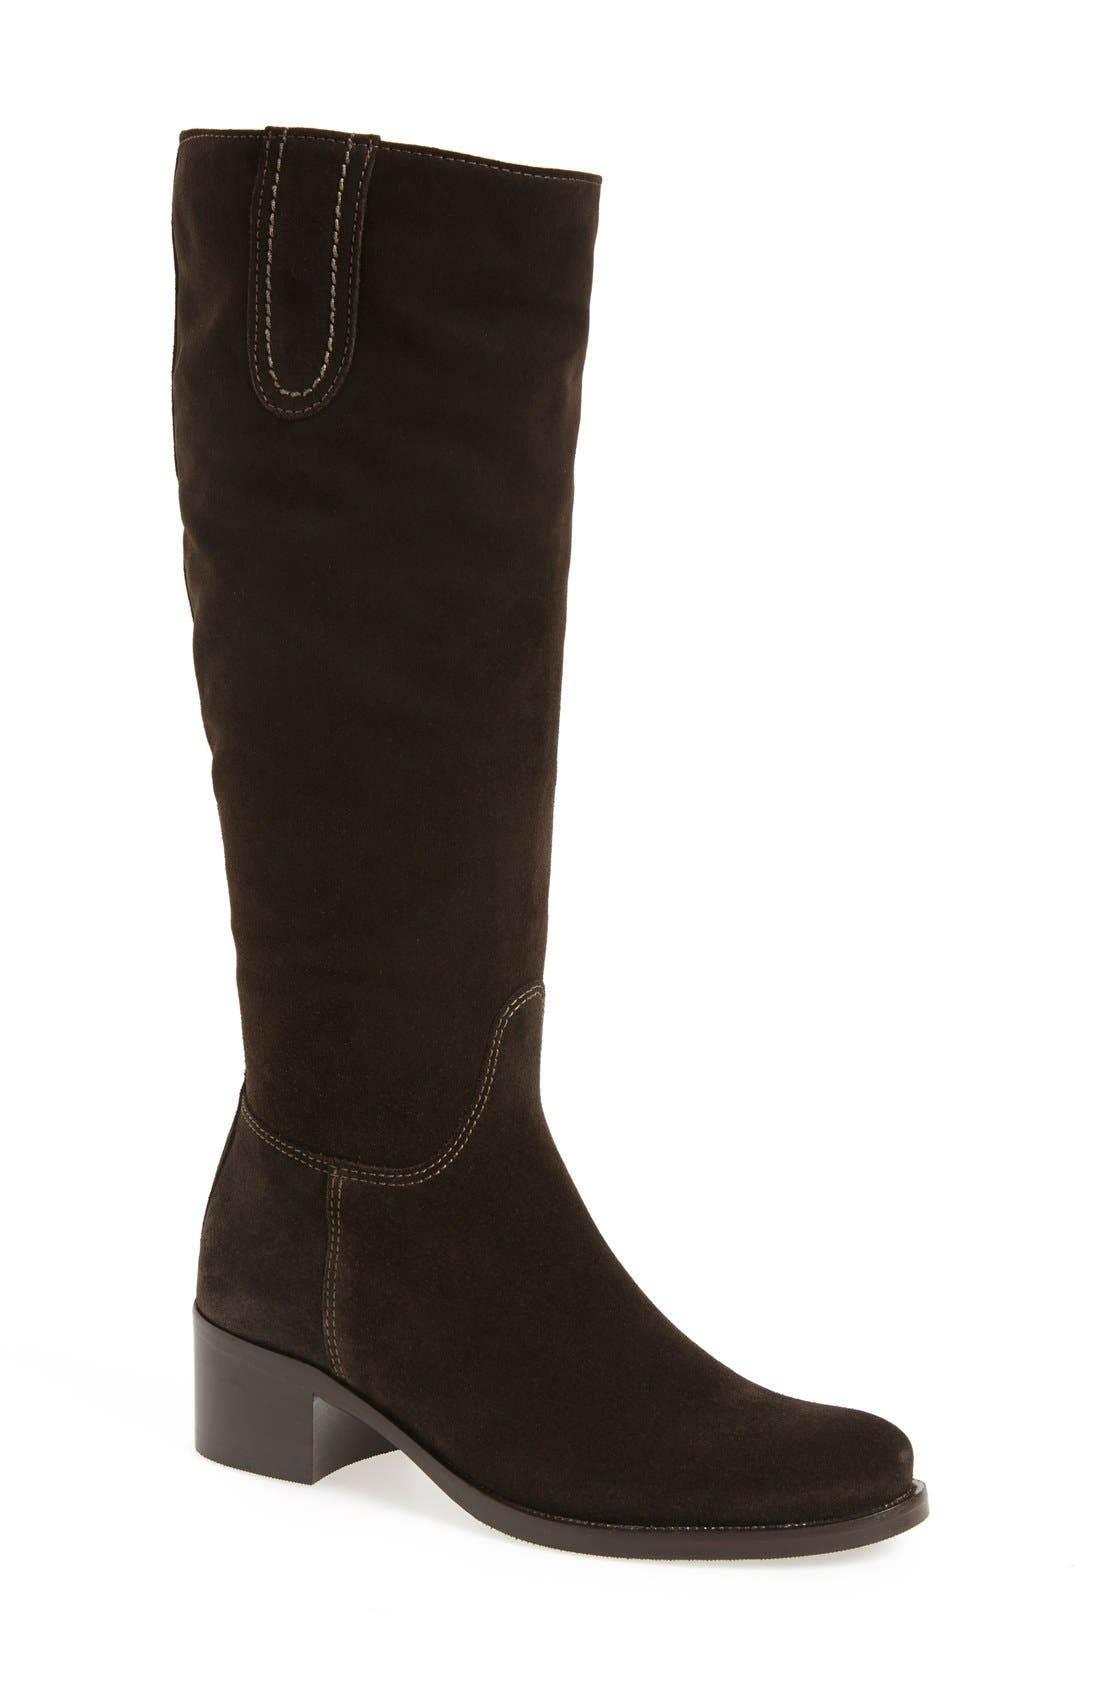 LA CANADIENNE 'Polly' Waterproof Knee High Boot